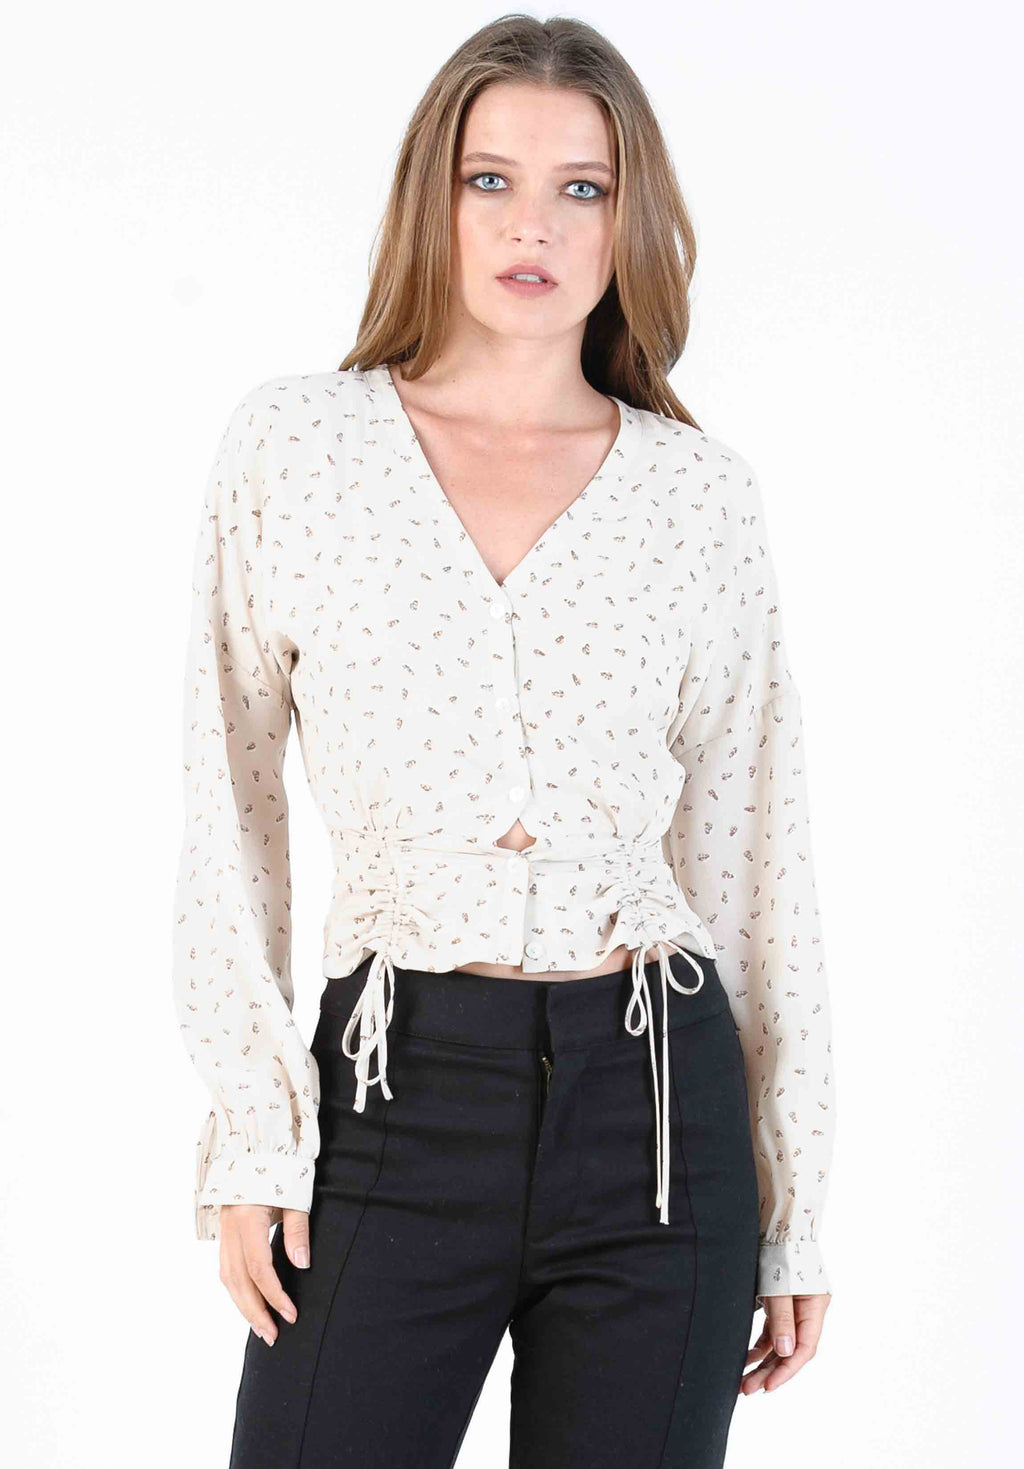 MISTLETOE RAGLAN TOP l IVORY LEAF